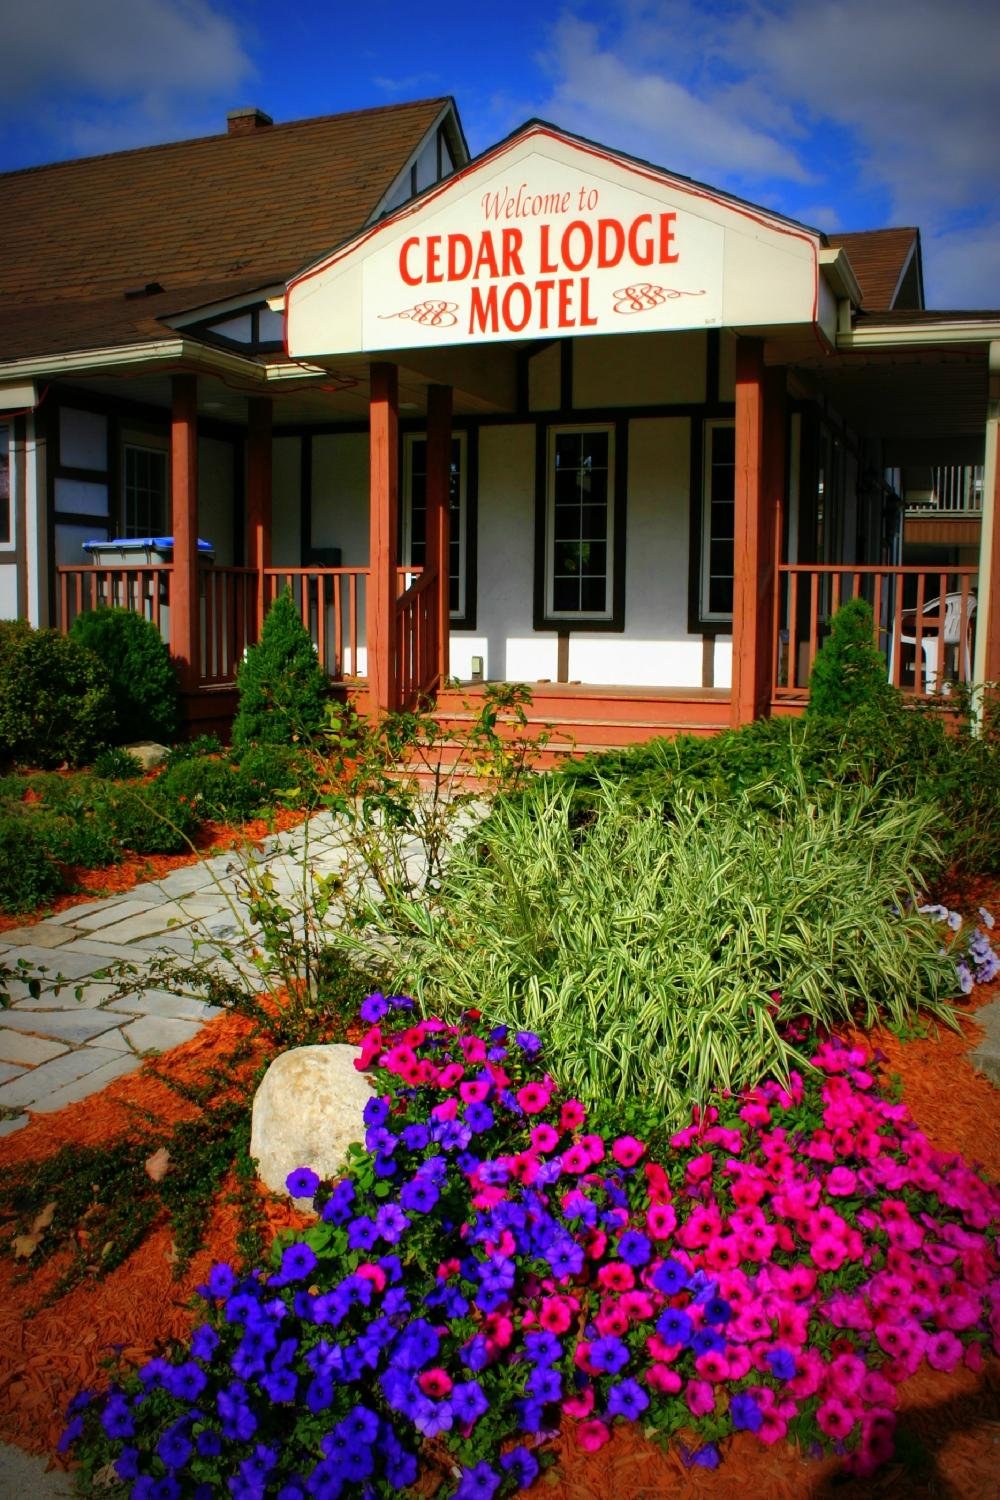 Cedar Lodge Motel